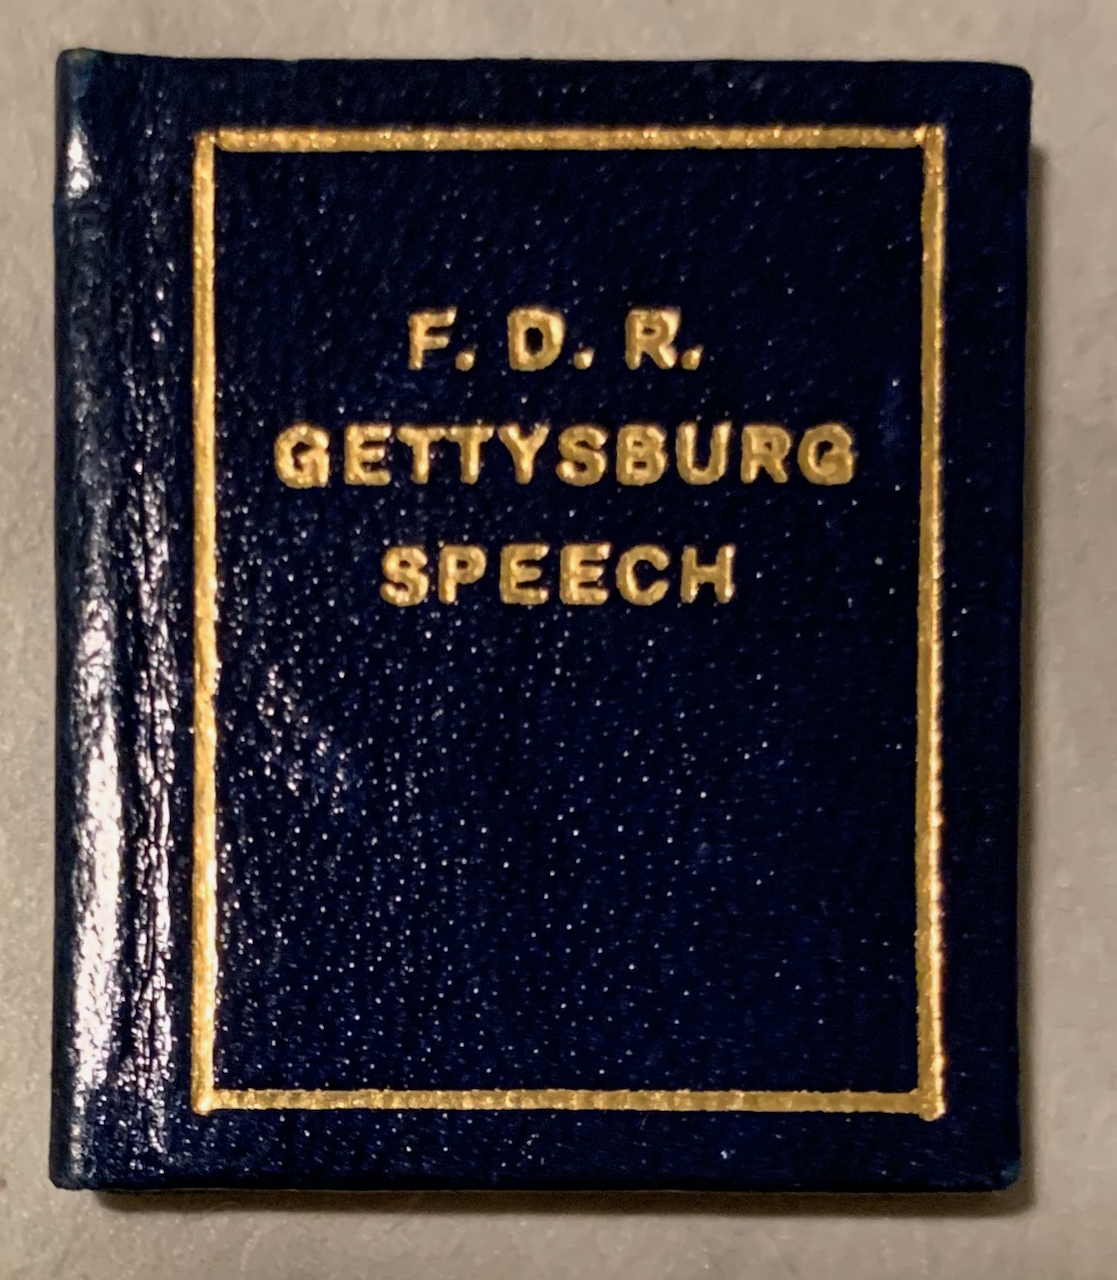 F. D. R. Gettysburg Speech, Delivered May 30, 1934 At